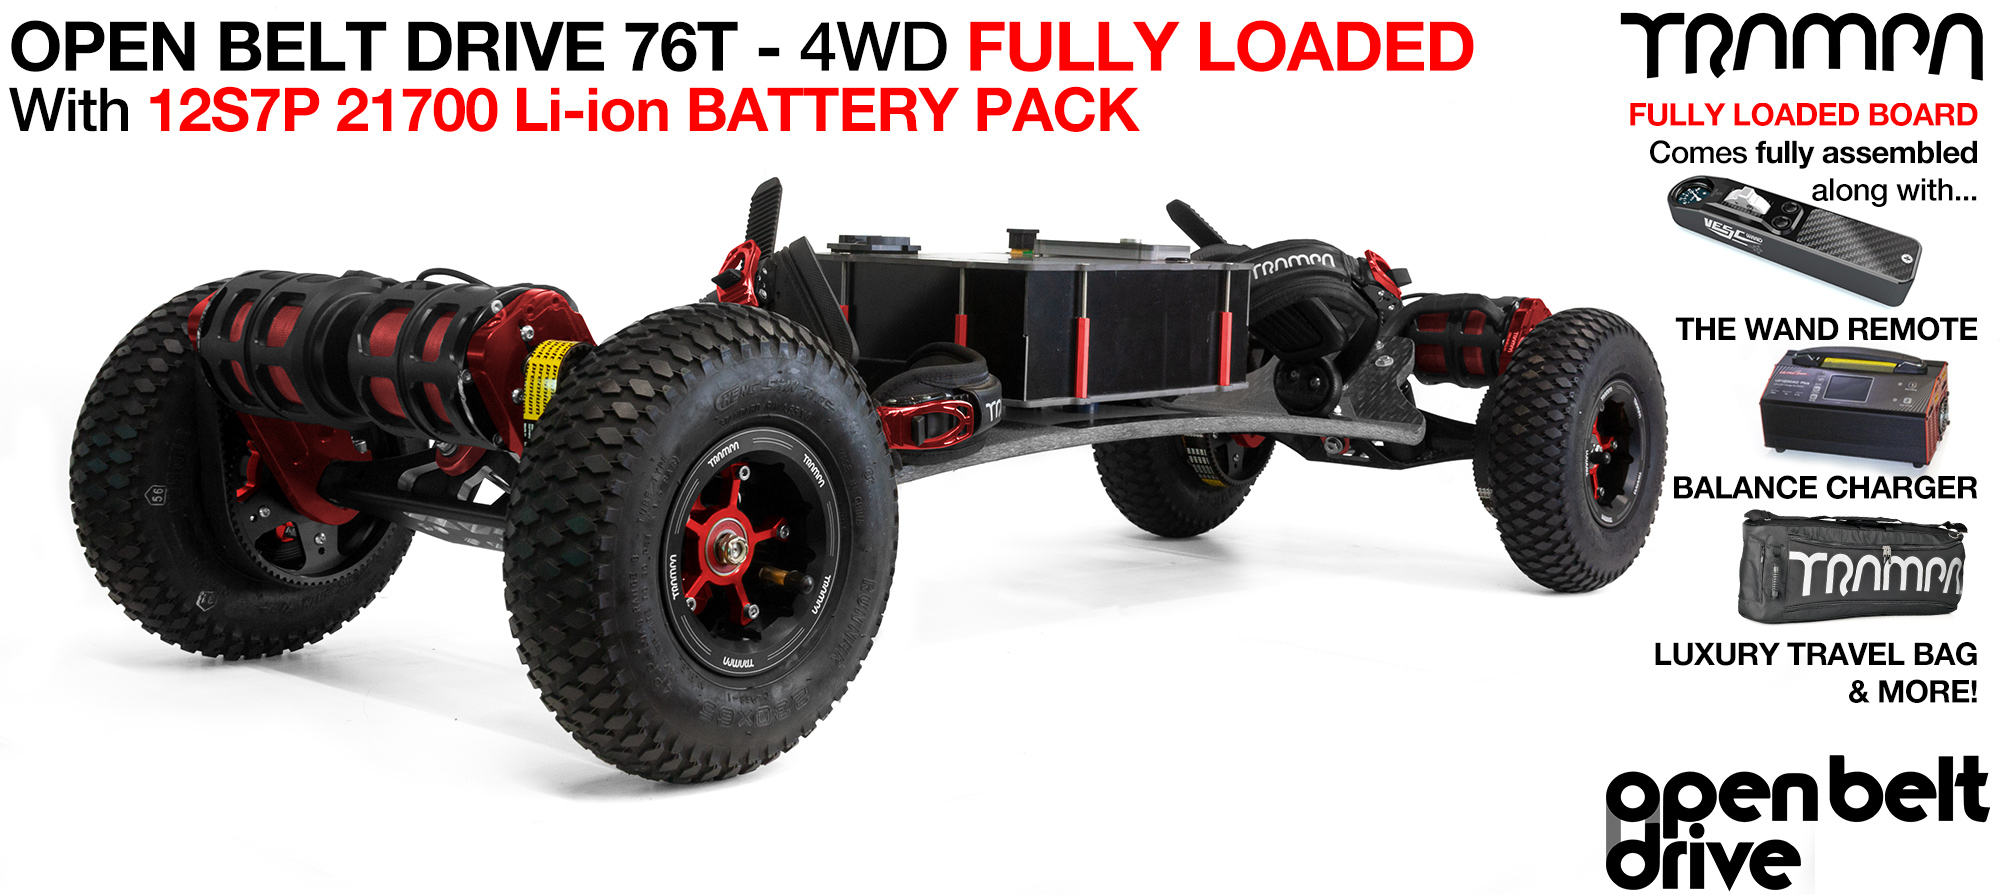 4WD 76t OPEN BELT DRIVE BIGBOI Electric TRAMPA Mountainboard - LOADED